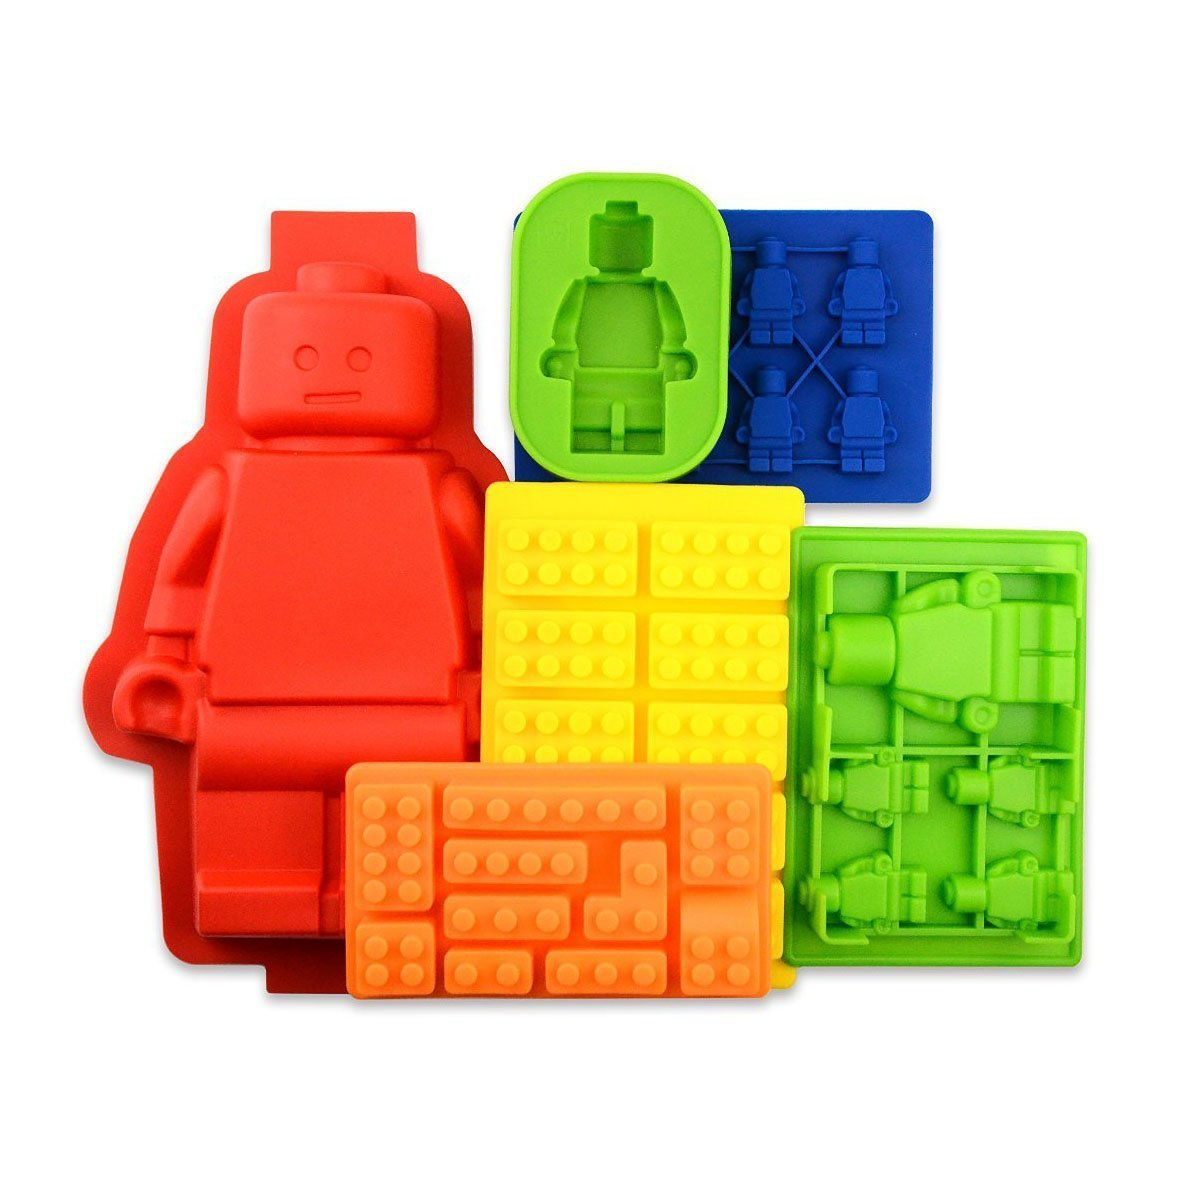 Bigear 6pc Candy Tray Molds For Lego Lovers, Chocolate Mo...